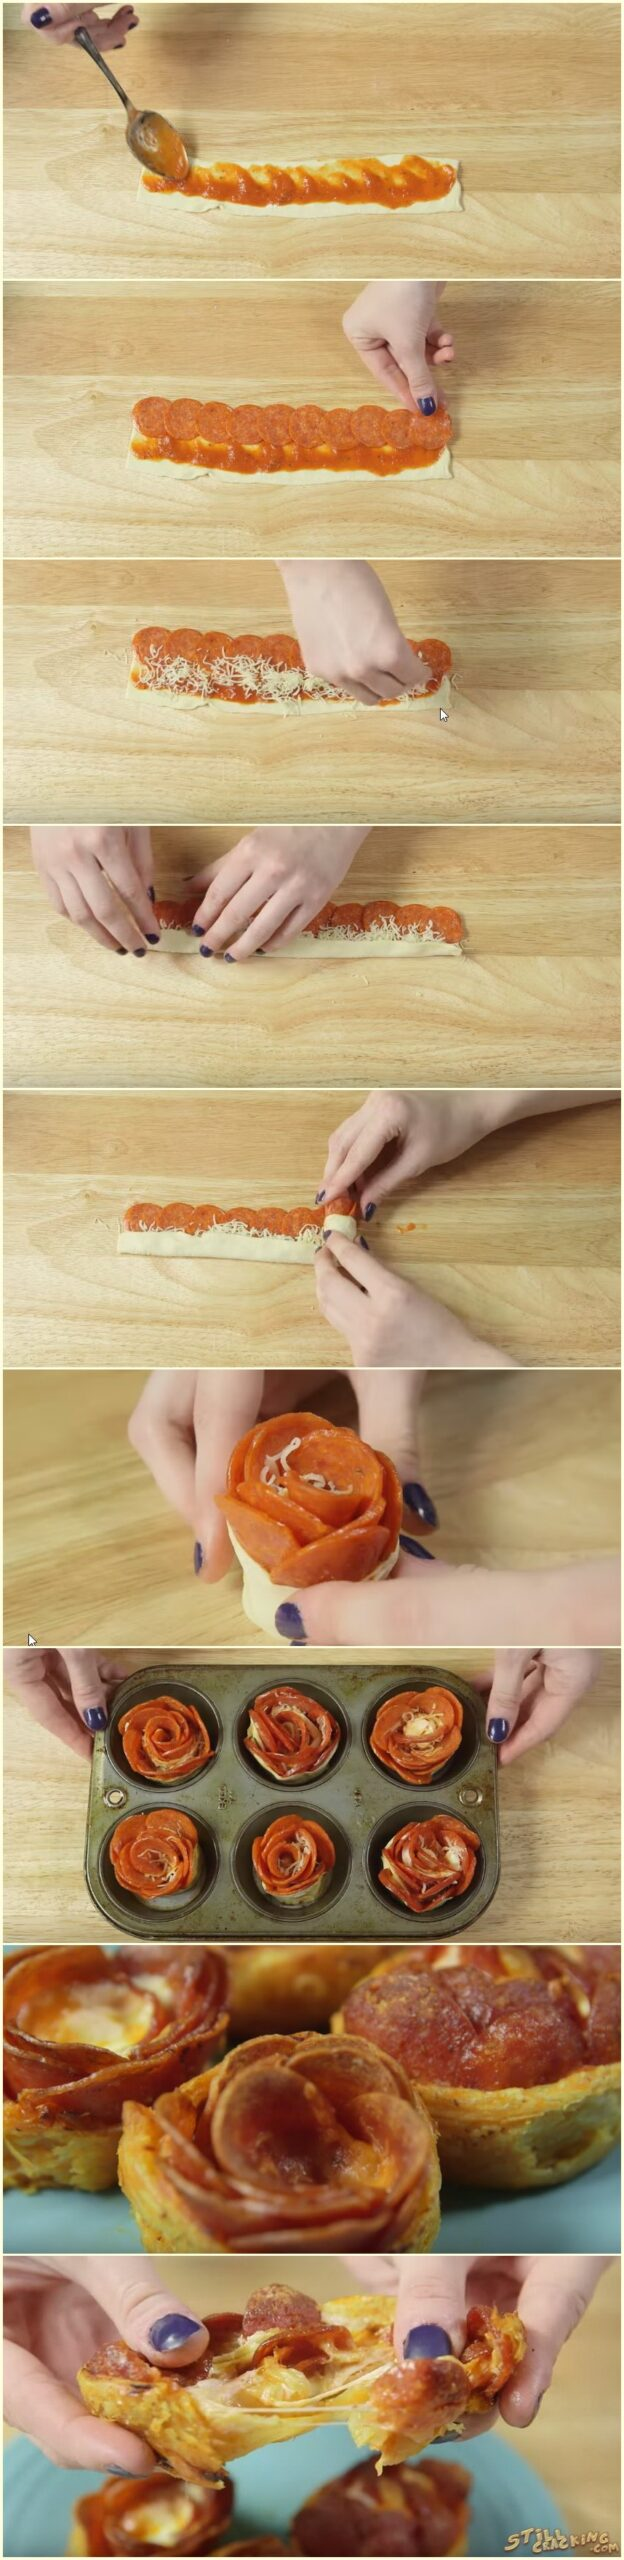 Pepperoni And Cheese Pizza Roses, pizza roses, food, recipes